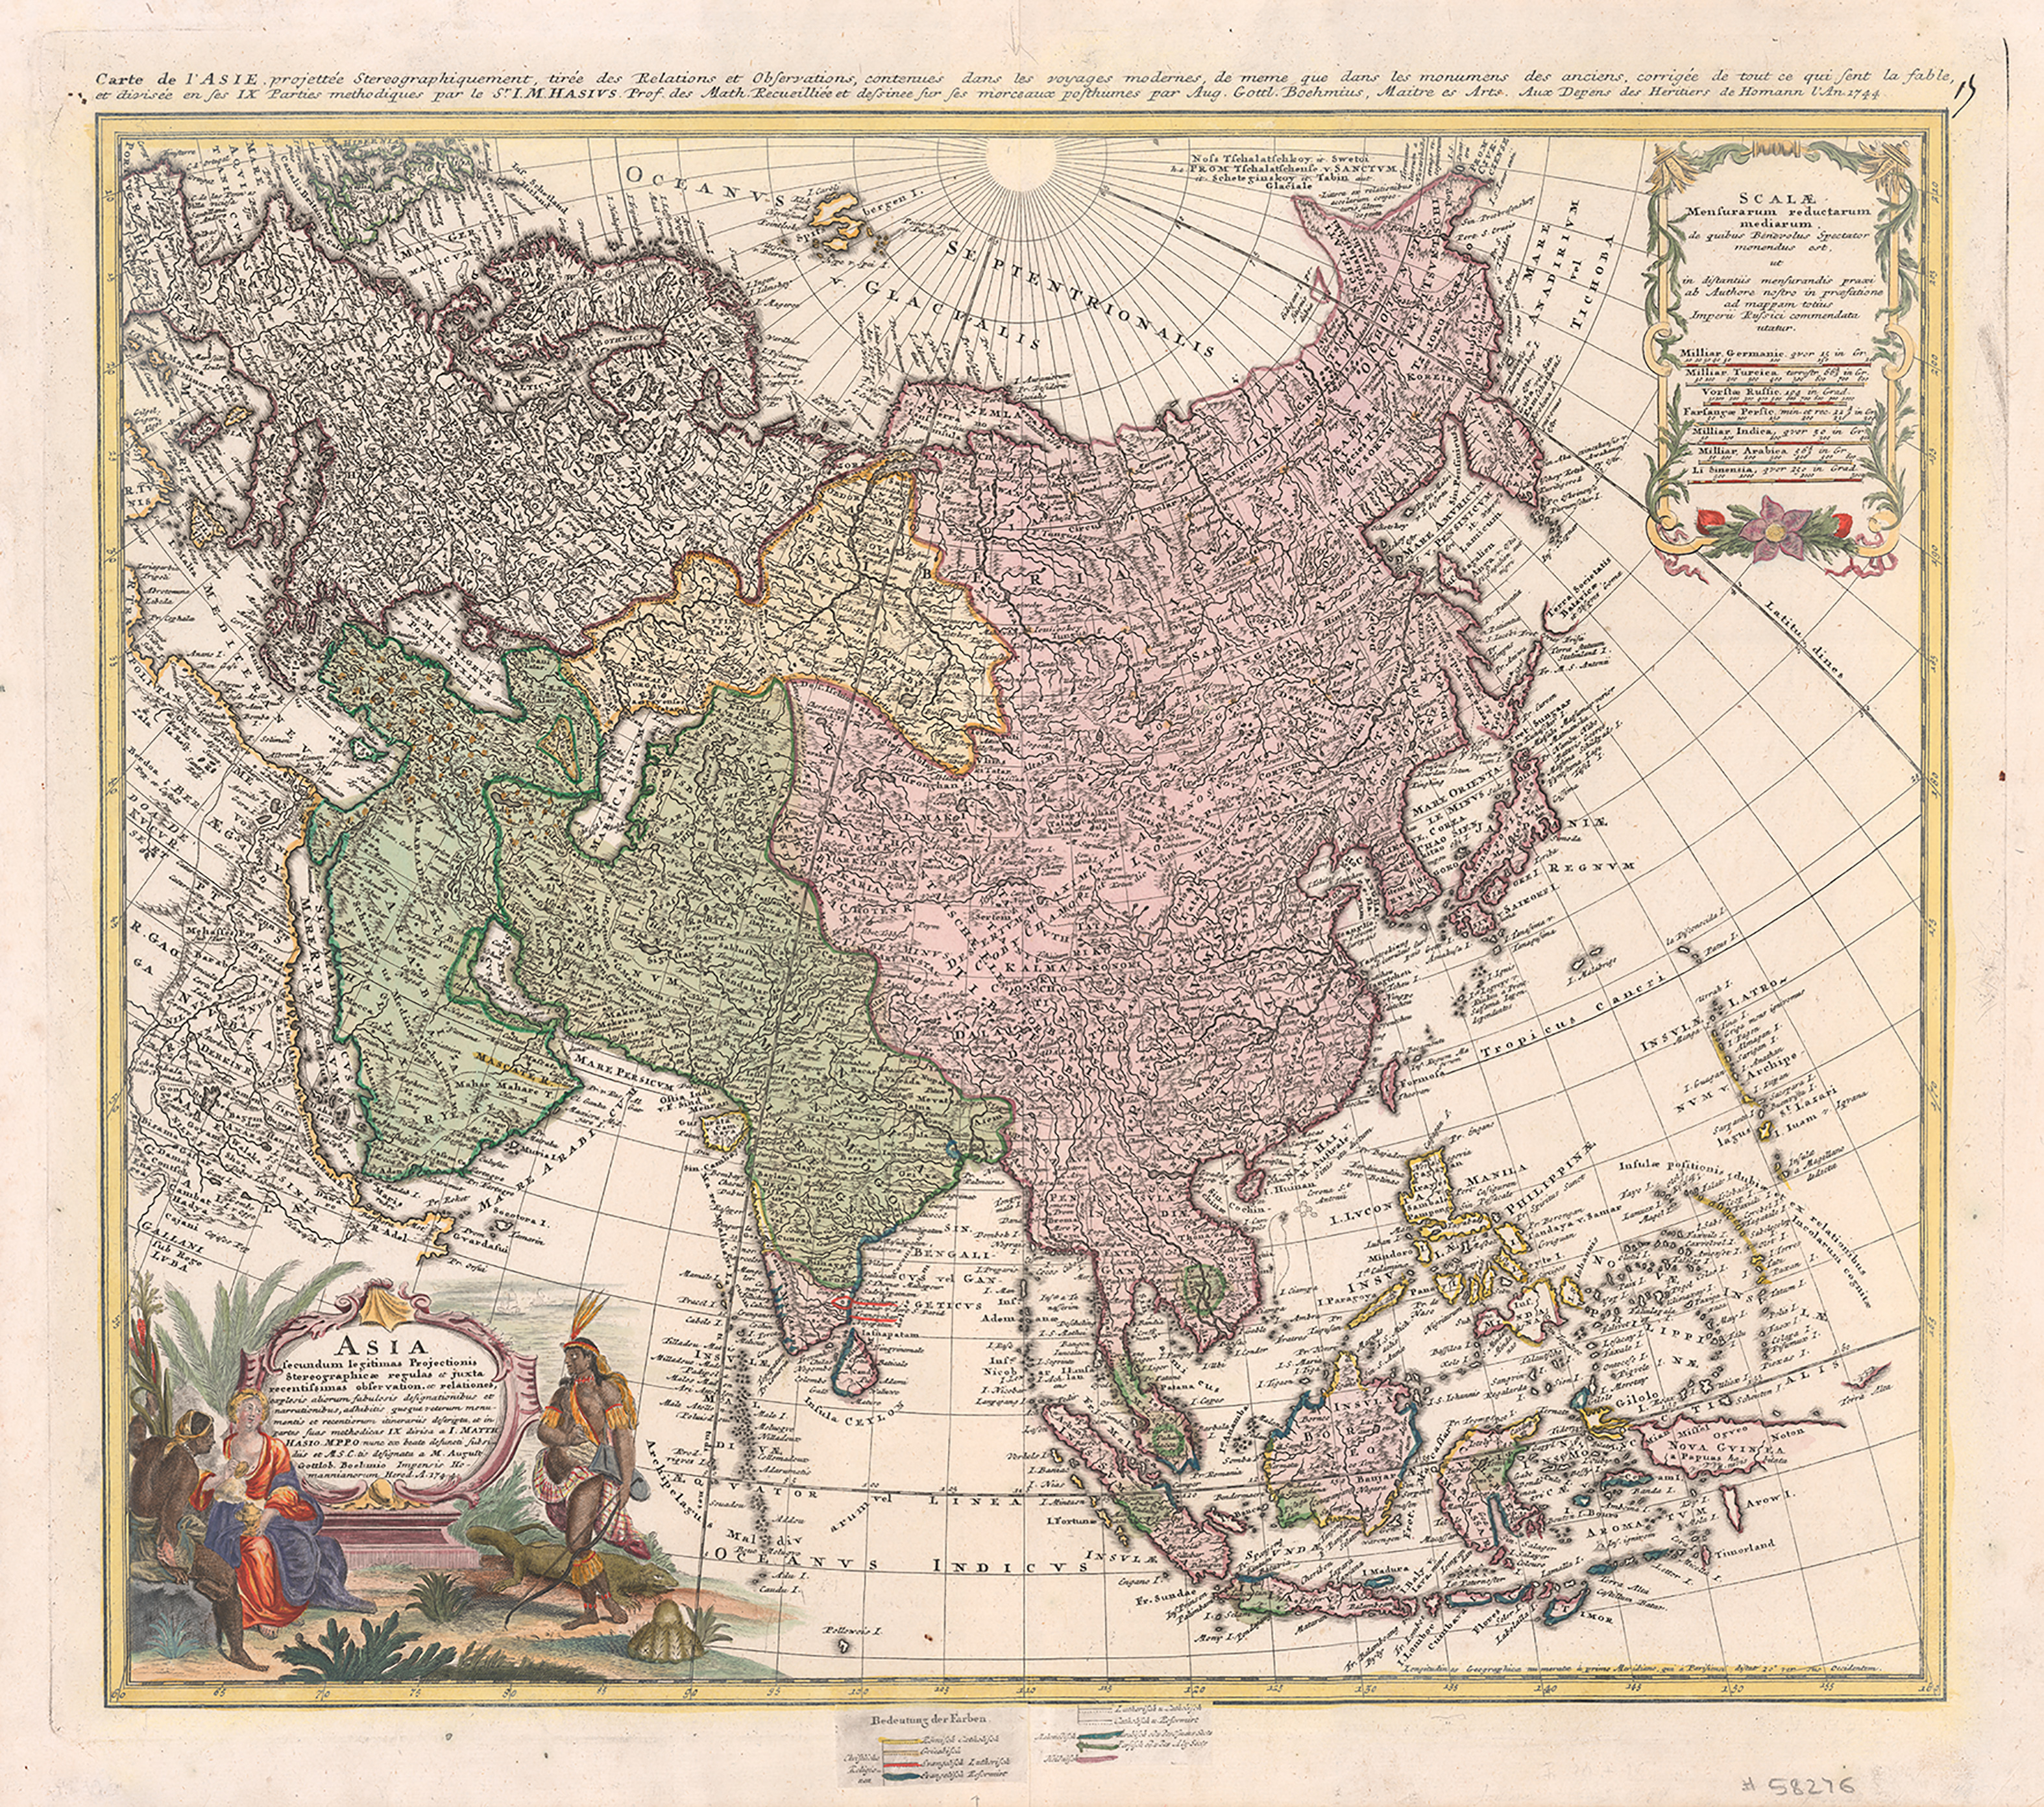 Detailed Map Of Asia.File Detailed Map Of Asia Jpg Wikipedia